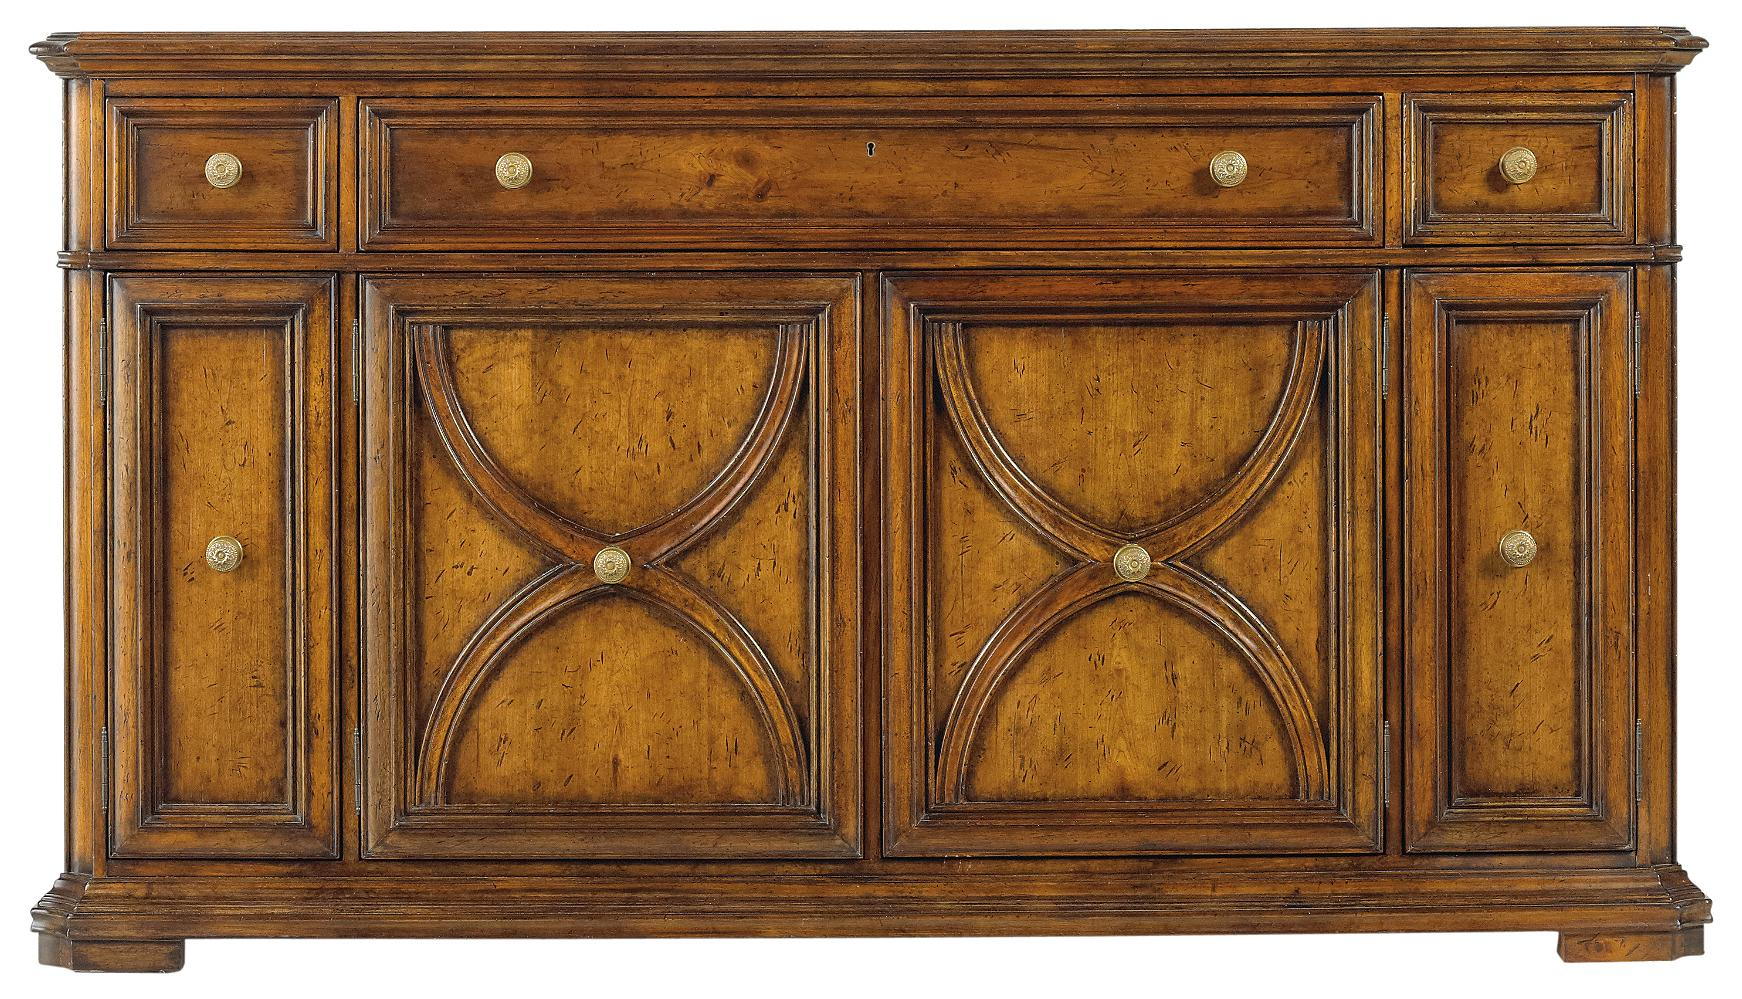 Stanley Furniture Arrondissement Grand Rue Buffet - Item Number: 222-11-05